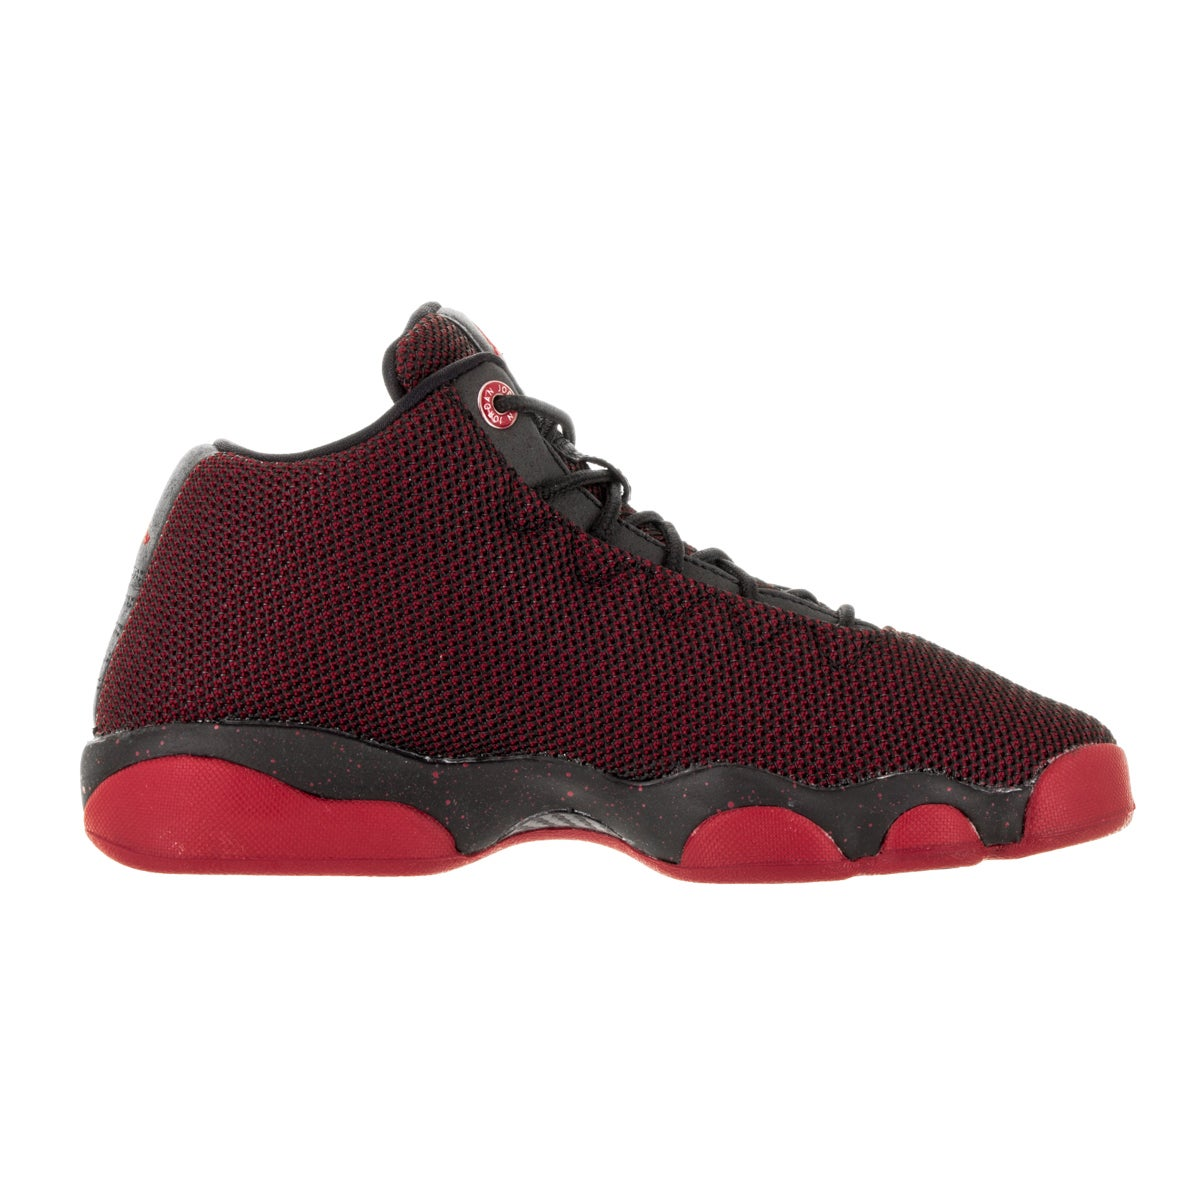 abbcd76cdef4 Shop Nike Kids Jordan Horizon Low Black Gym Red White Textile Basketball  Shoes - Free Shipping Today - Overstock - 13394435